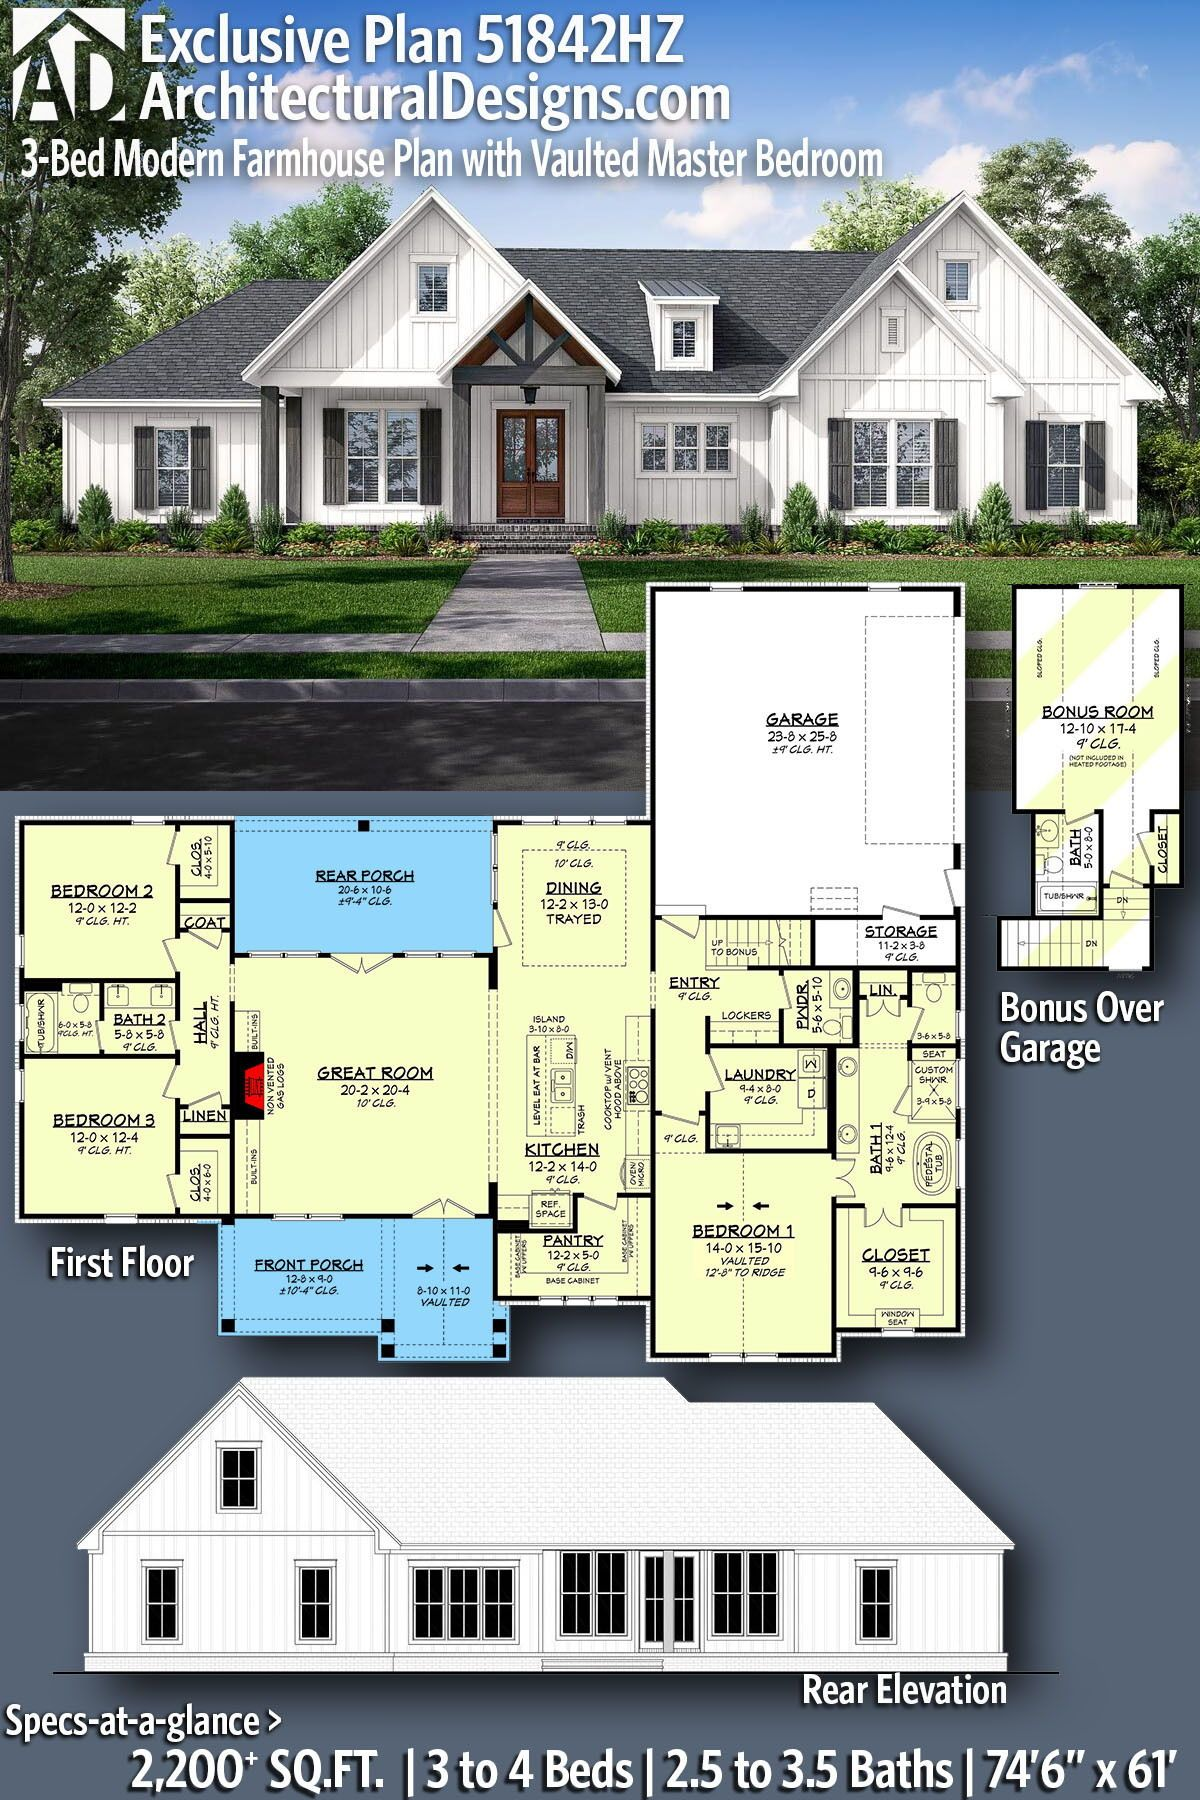 Plan 51842hz 3 Bed Modern Farmhouse Plan With Vaulted Master Bedroom Modern Farmhouse Plans Craftsman House Plans Farmhouse Plans